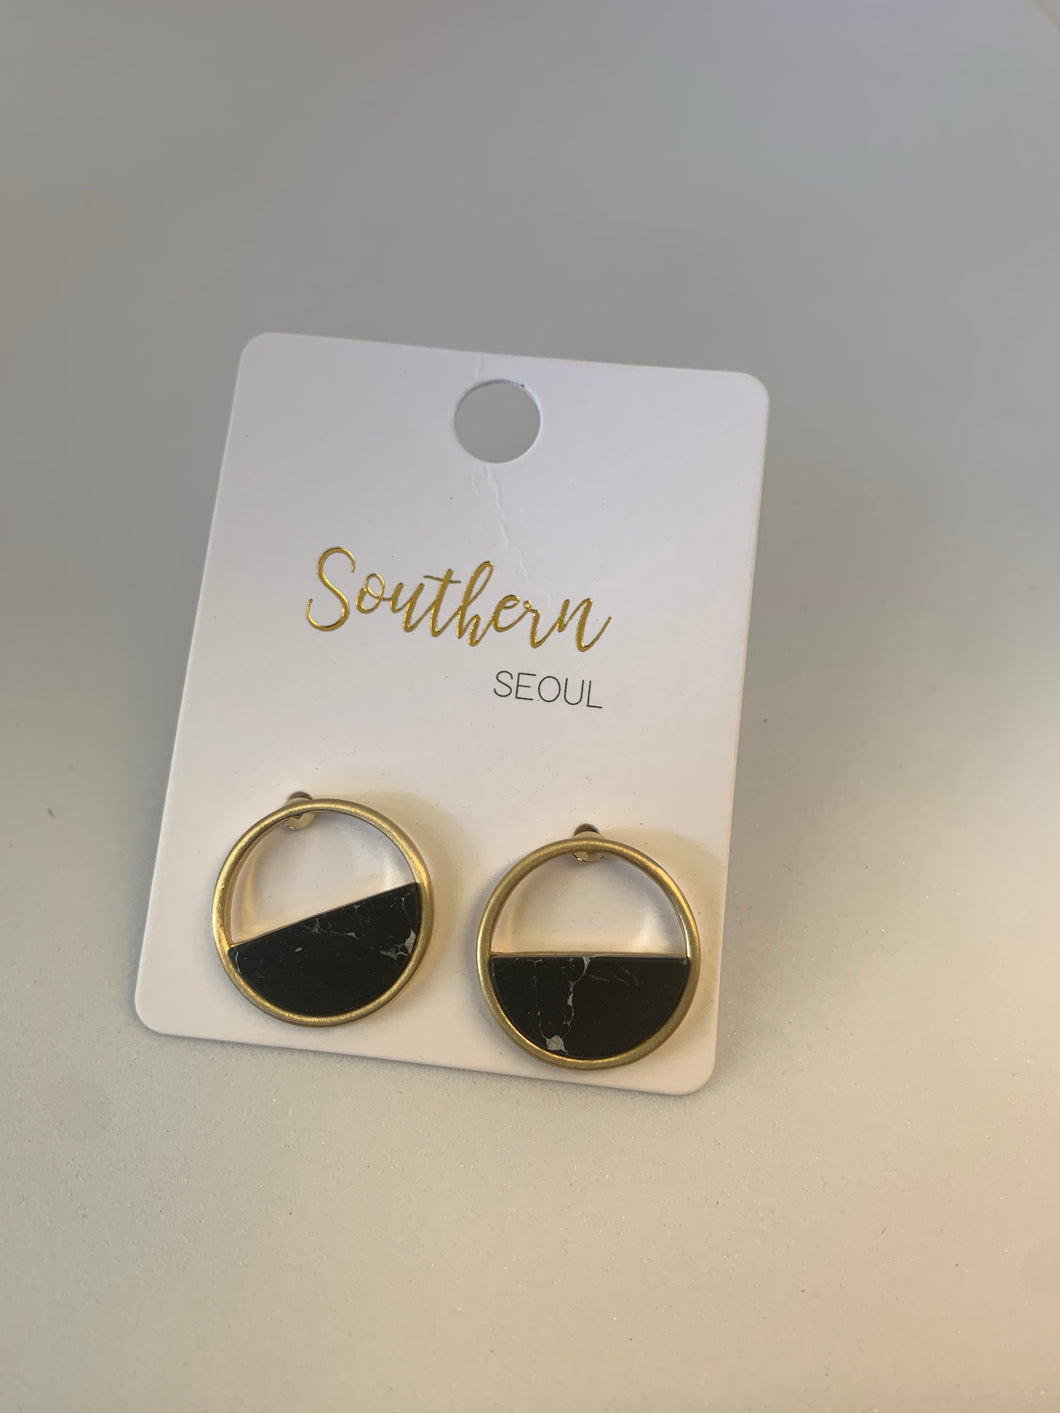 Southern Seoul Round Post Earrings with Semi Precious Stone